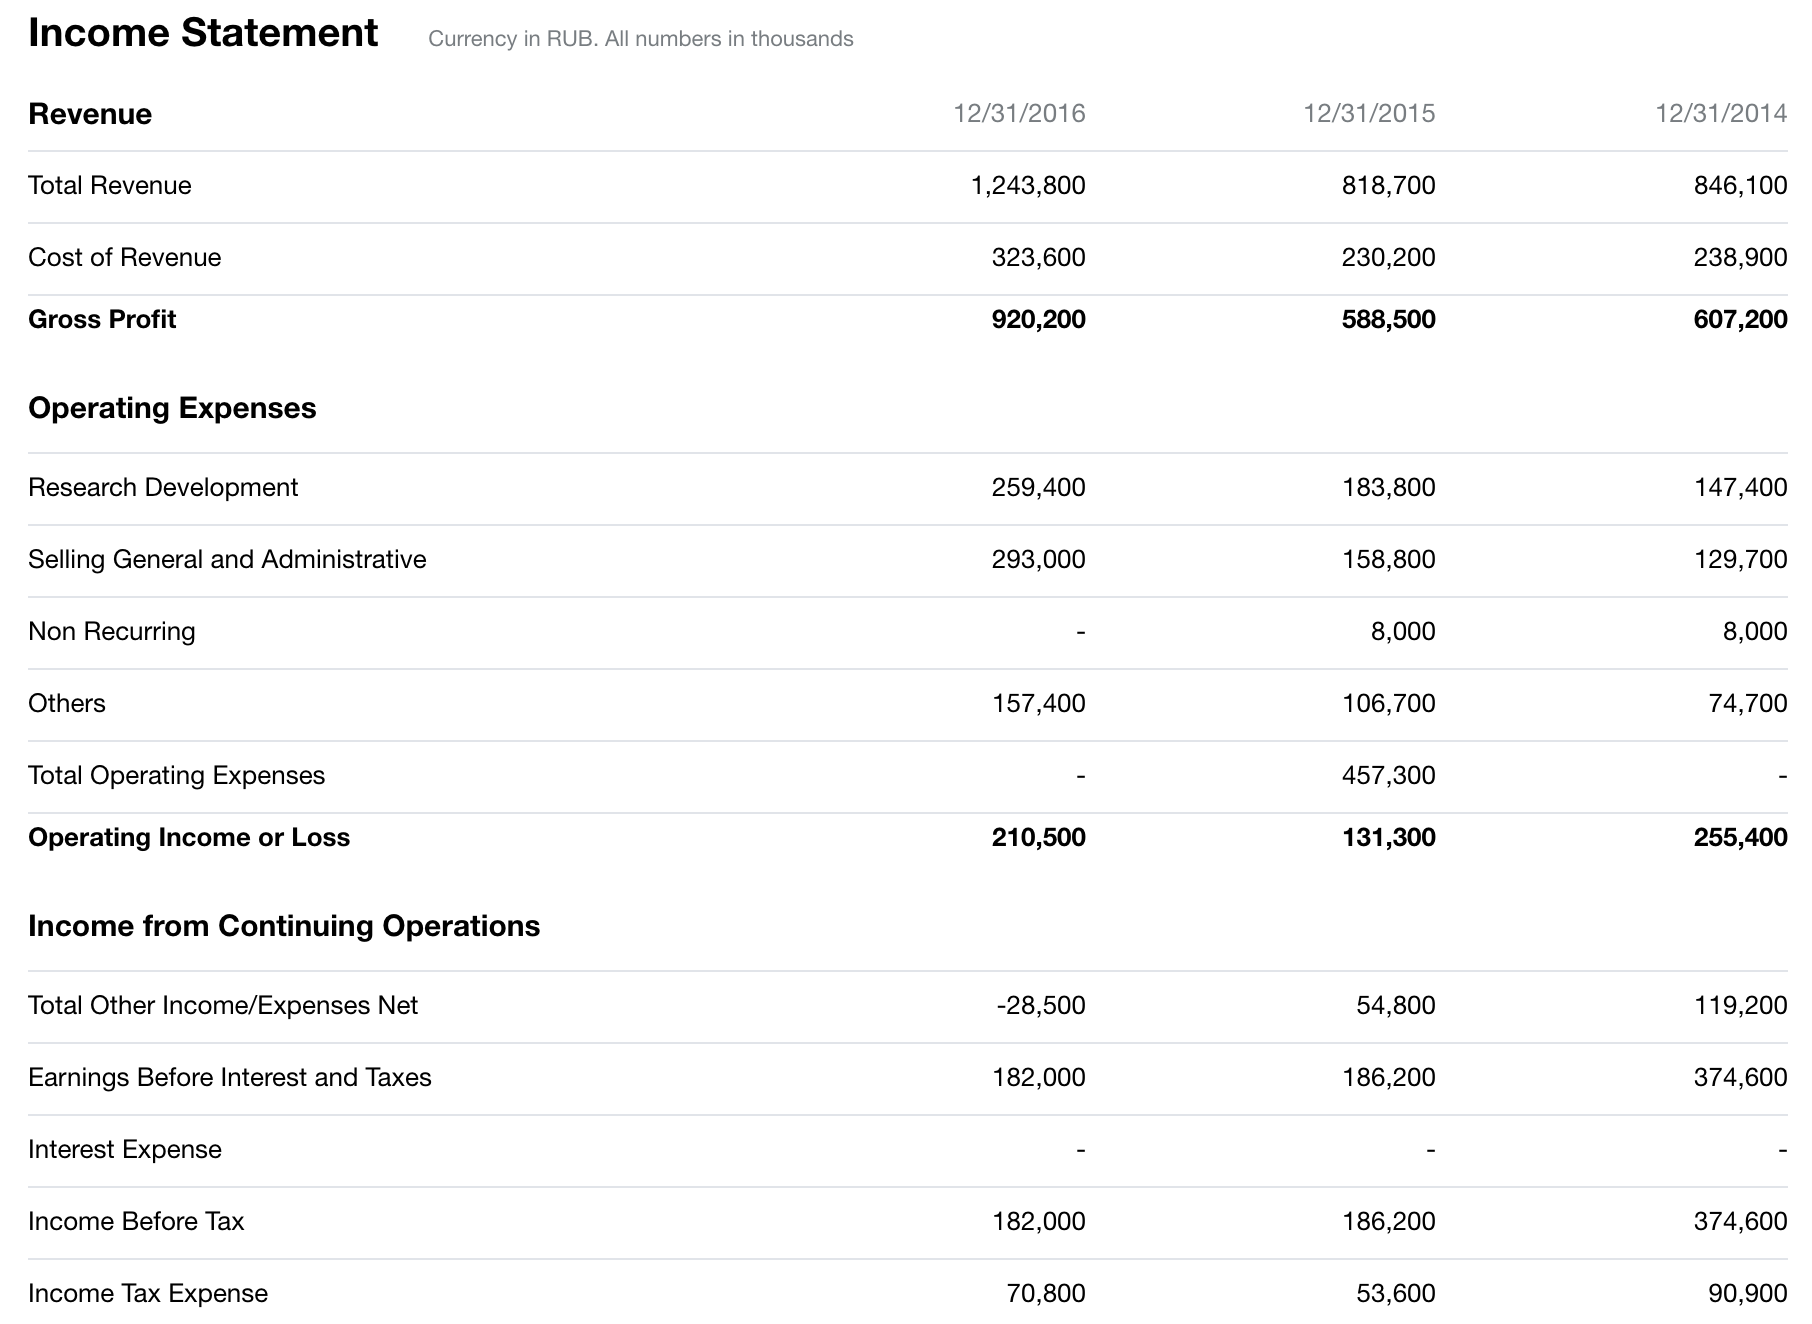 Yandex income statement